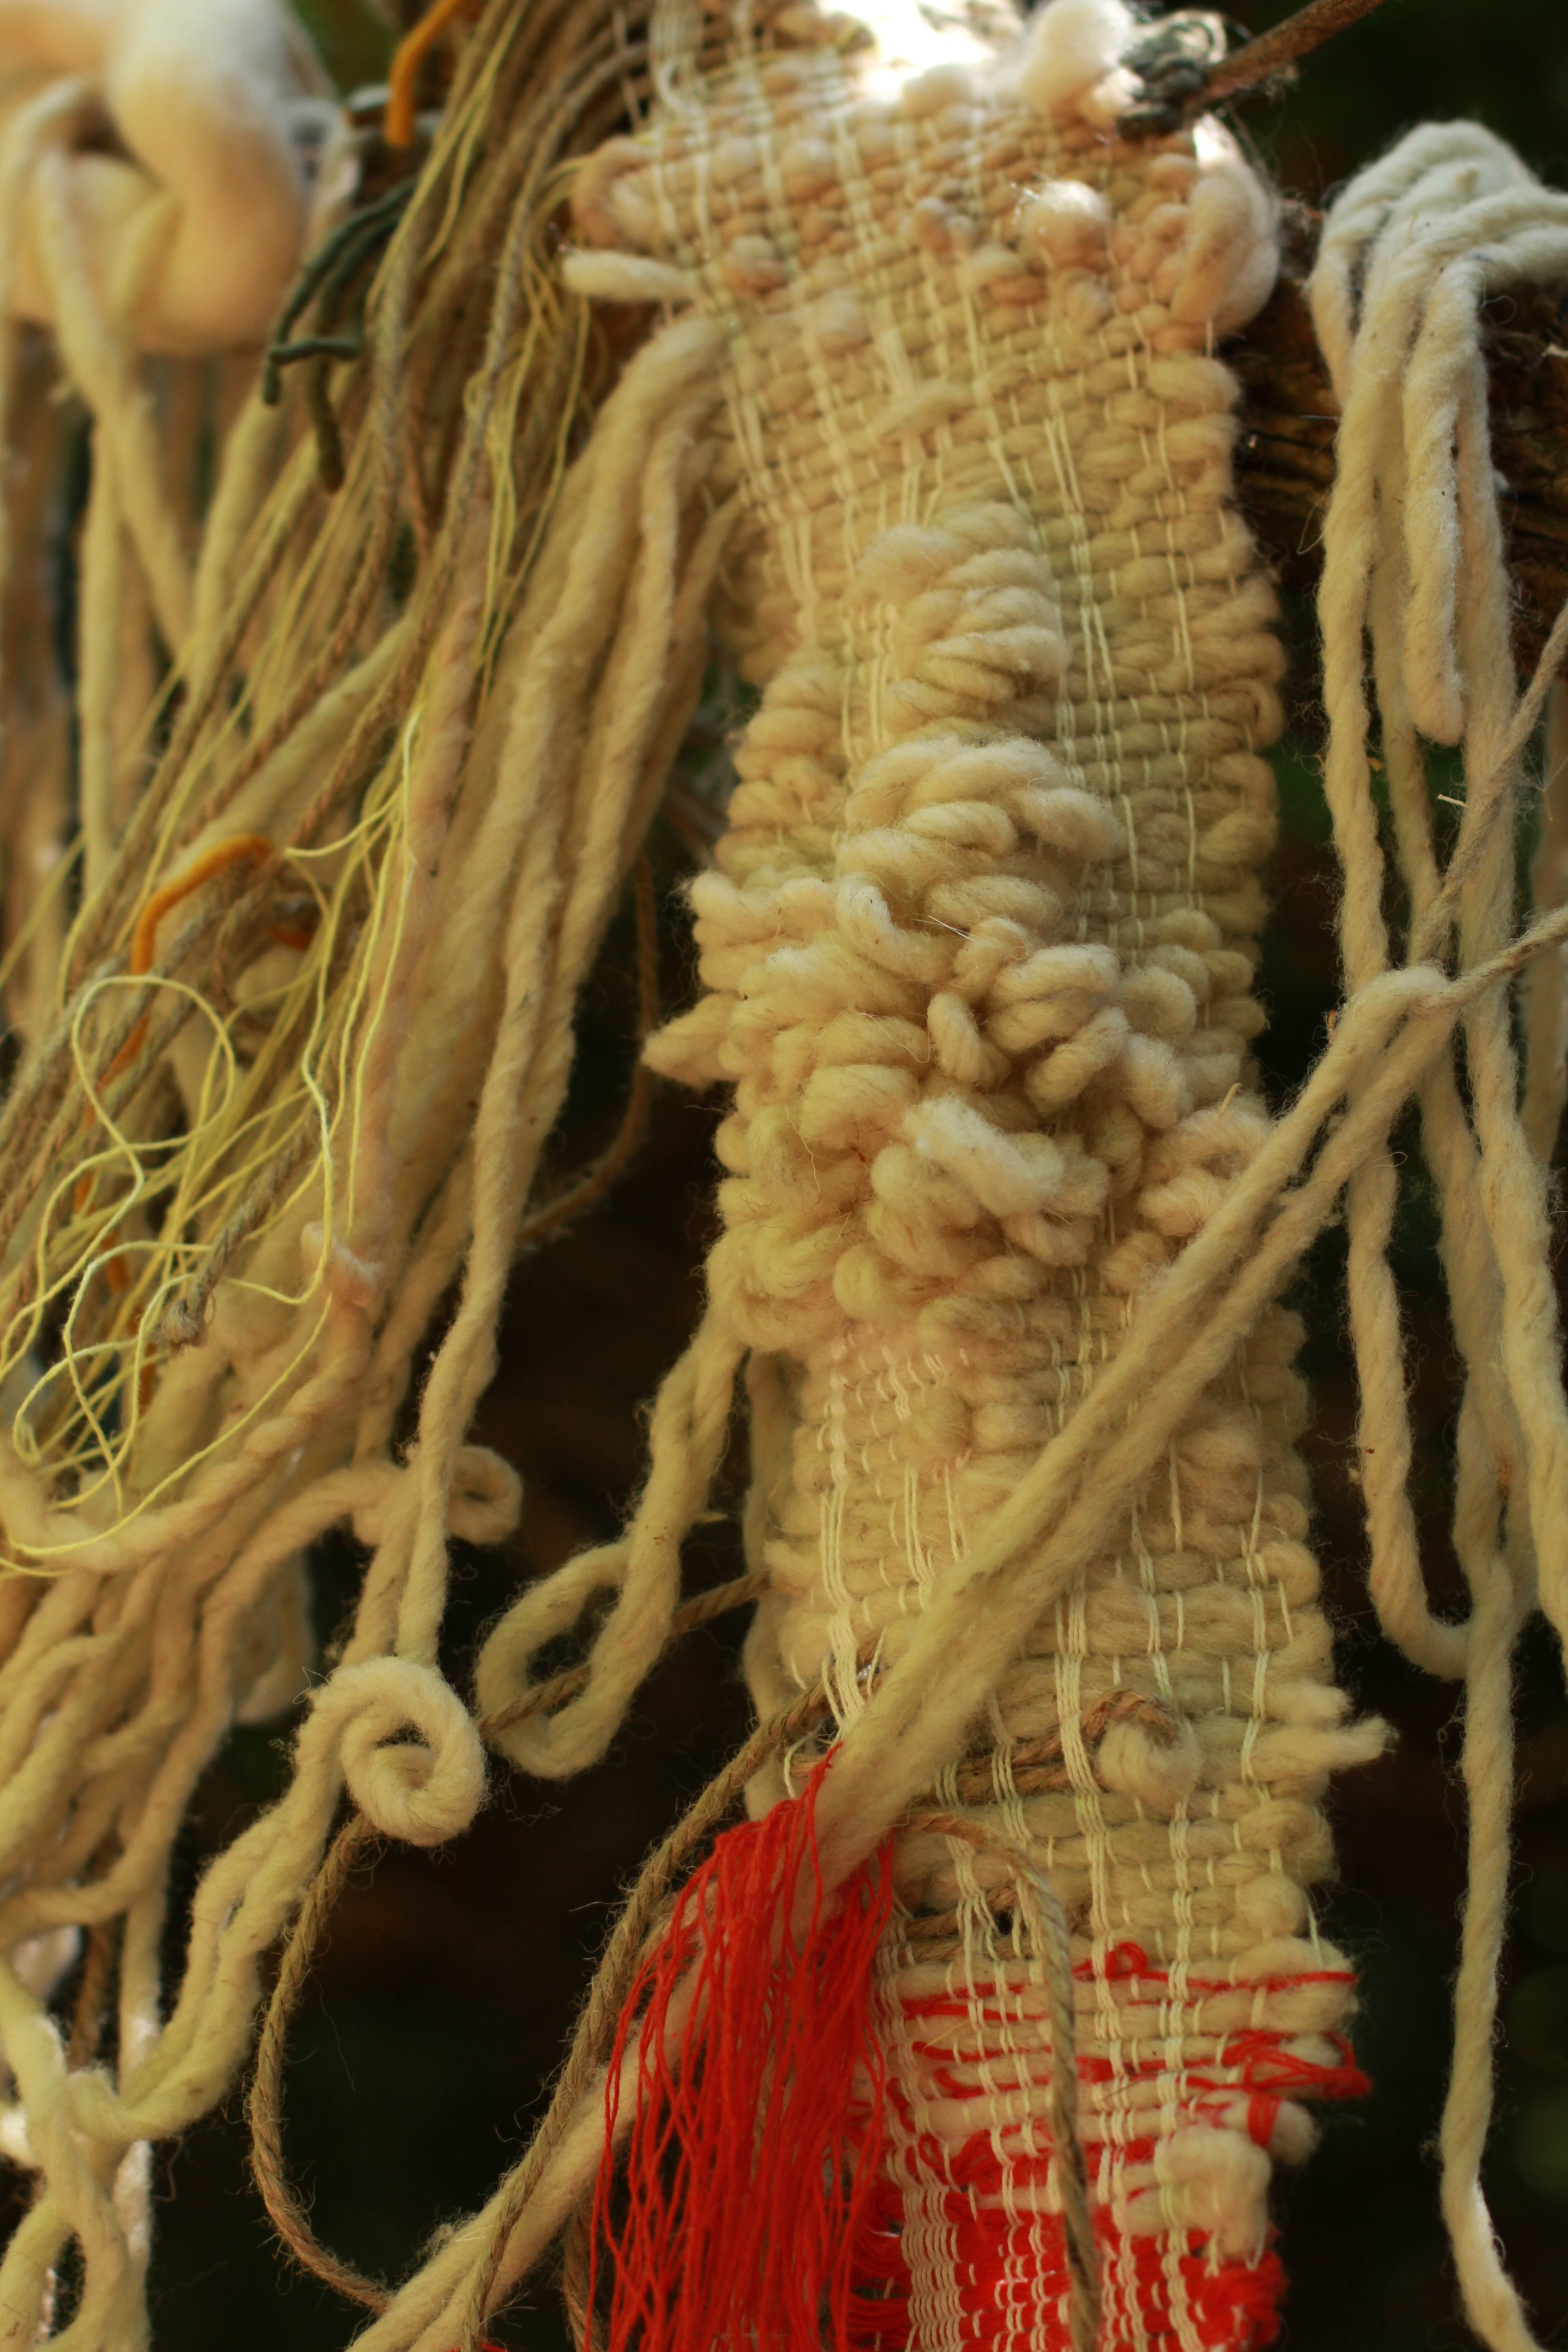 the river within,  detail  (2019)  Naturally dyed cotton, wool, hemp, linen  Site Specific sculpture: Guapamacataro Art and Ecology Center, Michoacan, Mexico  2.5 x 3.5 x .5ft